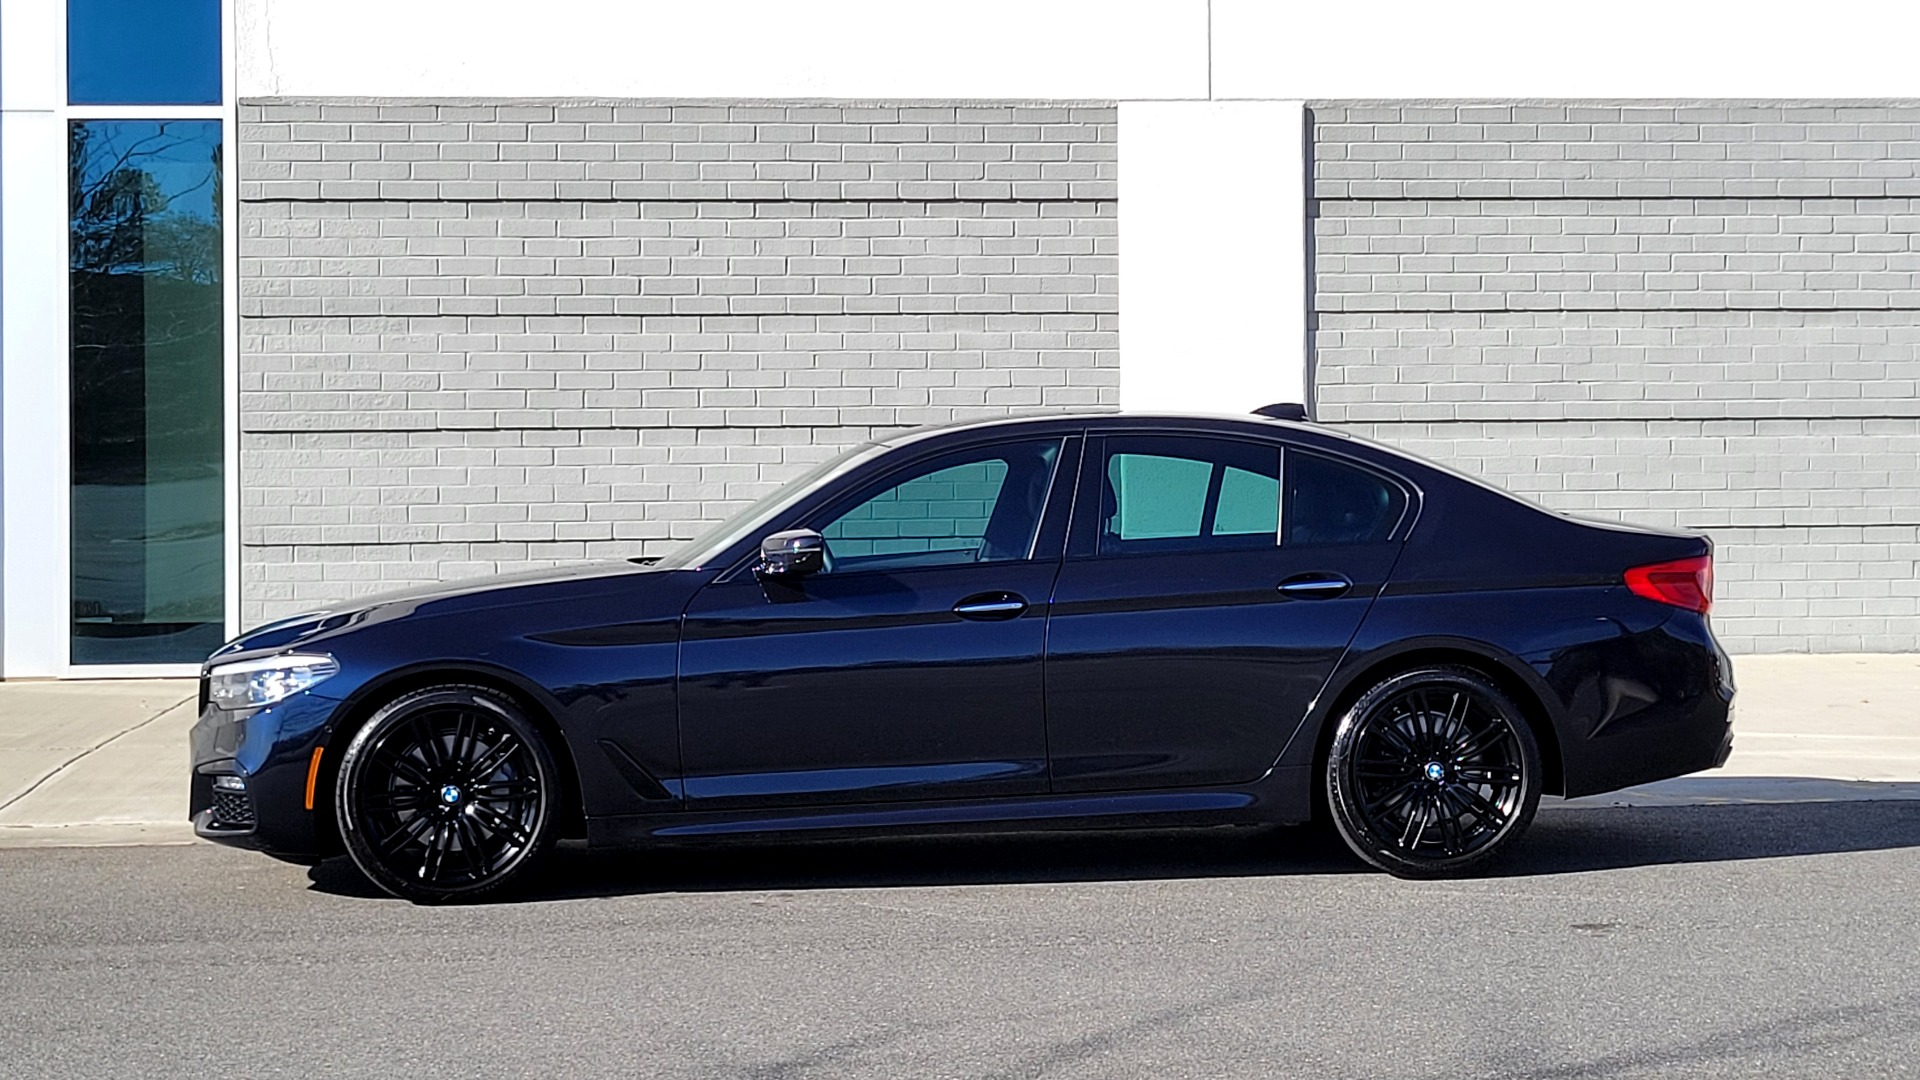 Used 2018 BMW 5 SERIES 540I XDRIVE / M-SPORT / NAV / WIFI / SUNROOF / REARVIEW for sale $36,773 at Formula Imports in Charlotte NC 28227 5